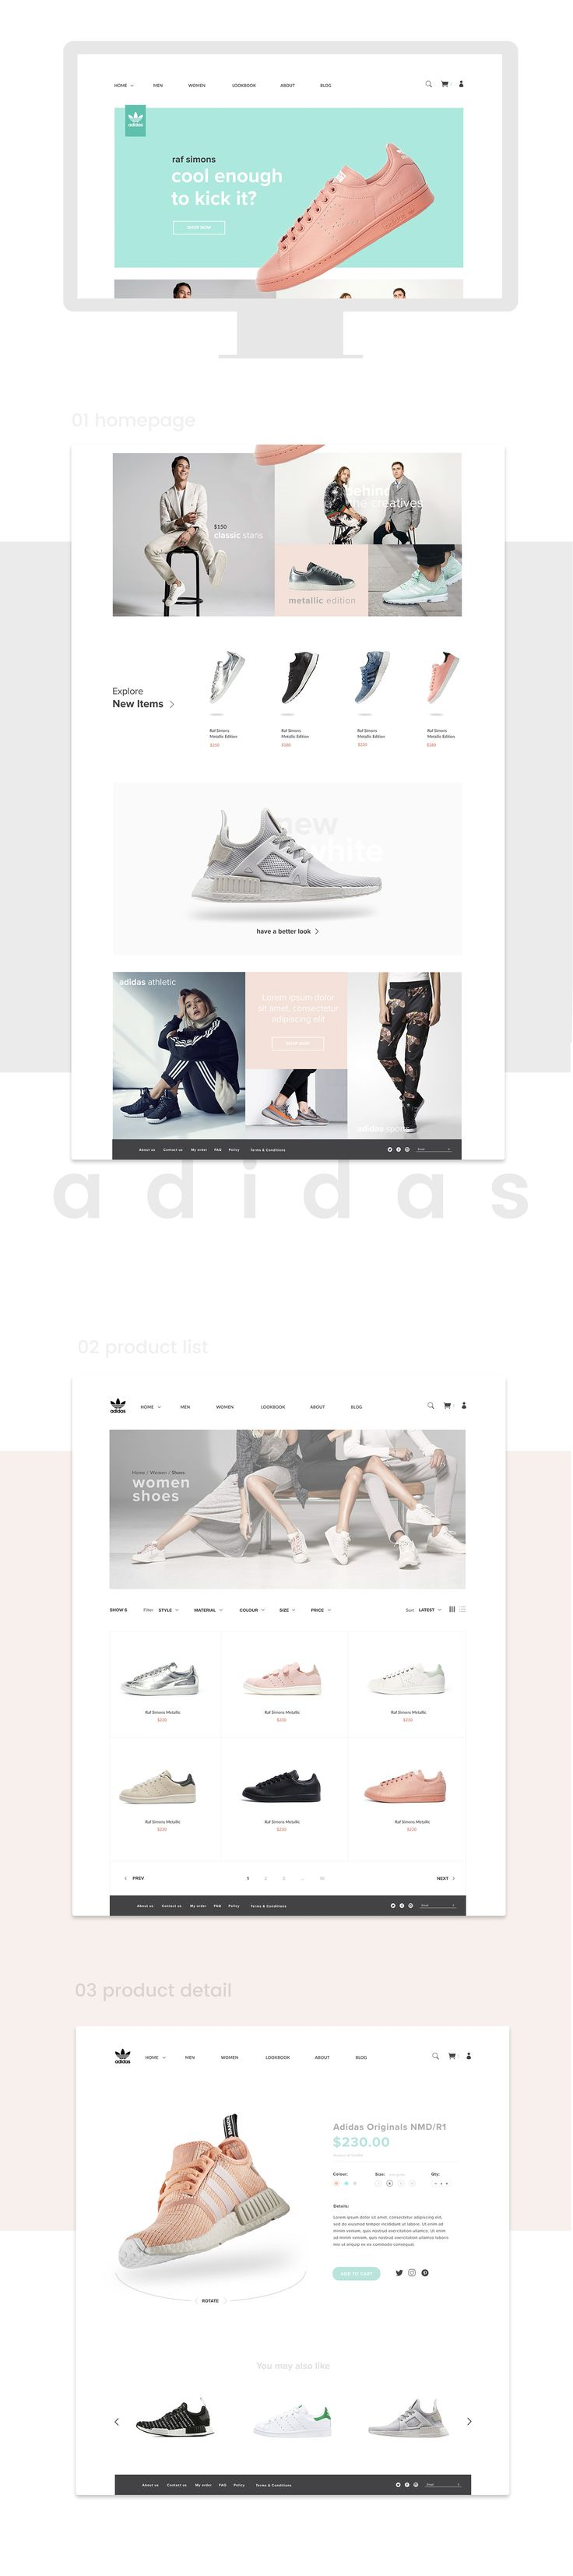 https://www.behance.net/gallery/49226037/Web-Design-for-Adidas-Shoes